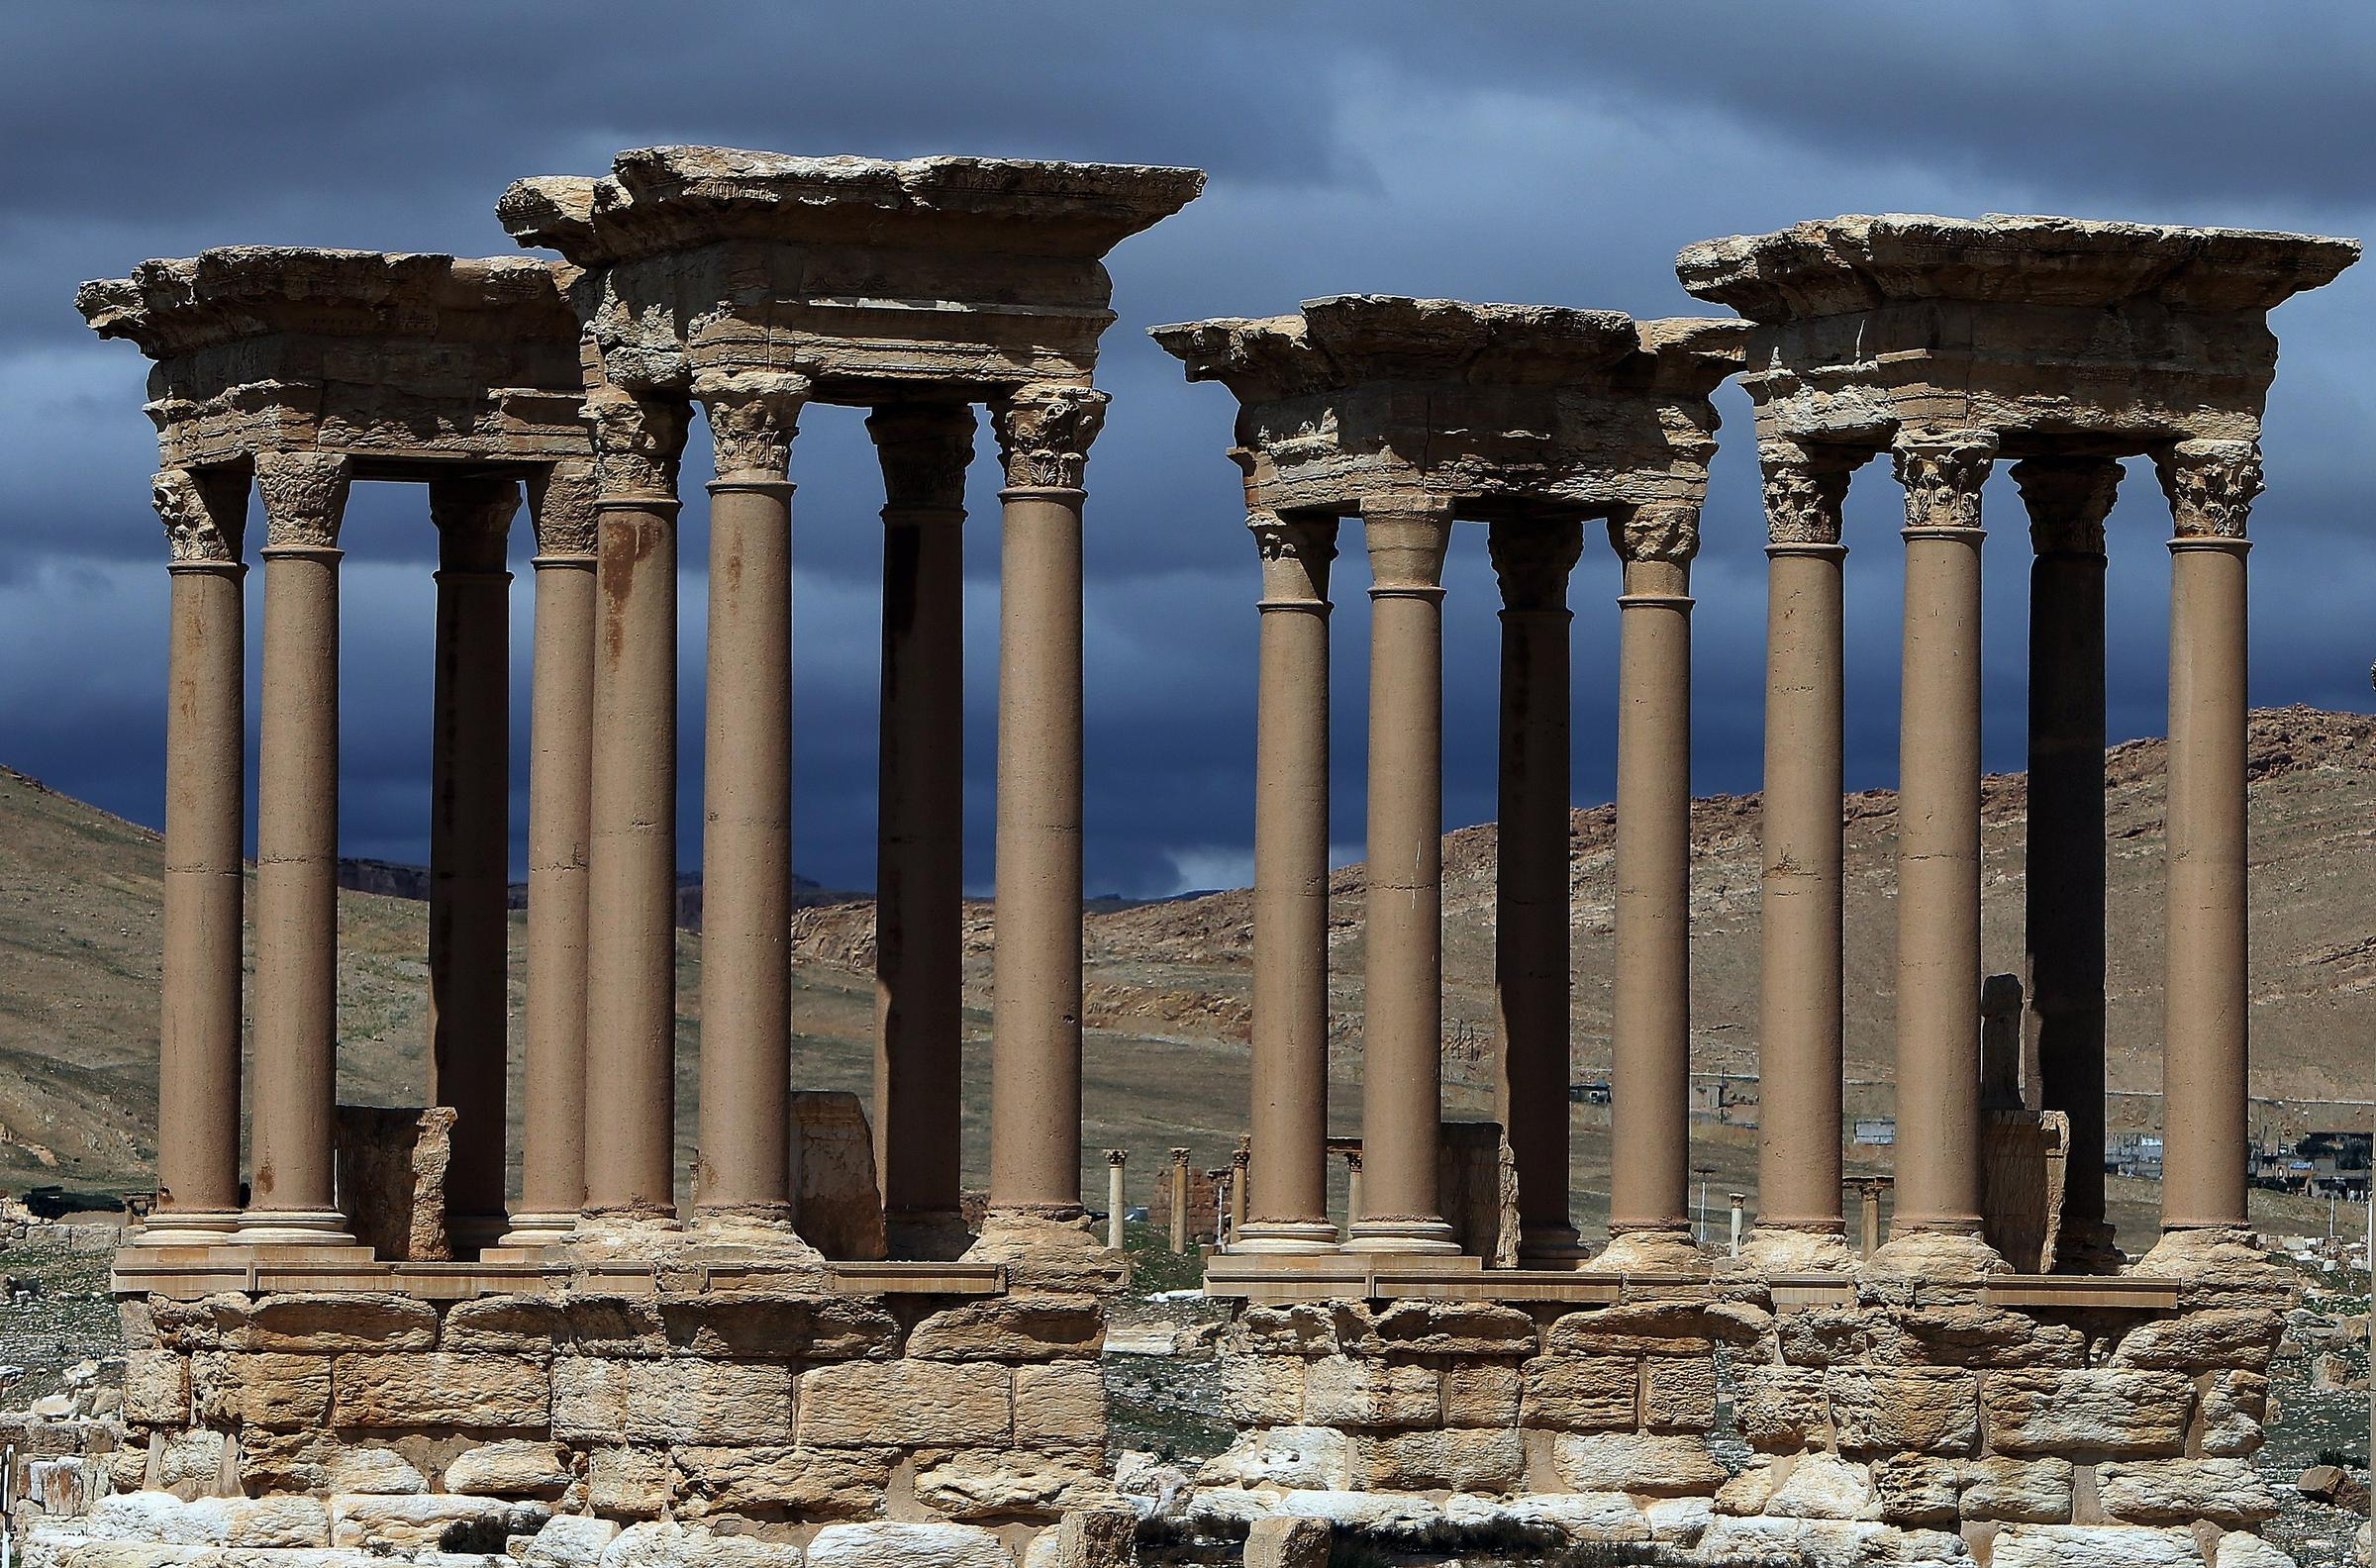 Daesh Ruins Palmyra to 'Deprive Syrians of Their Past and Future'